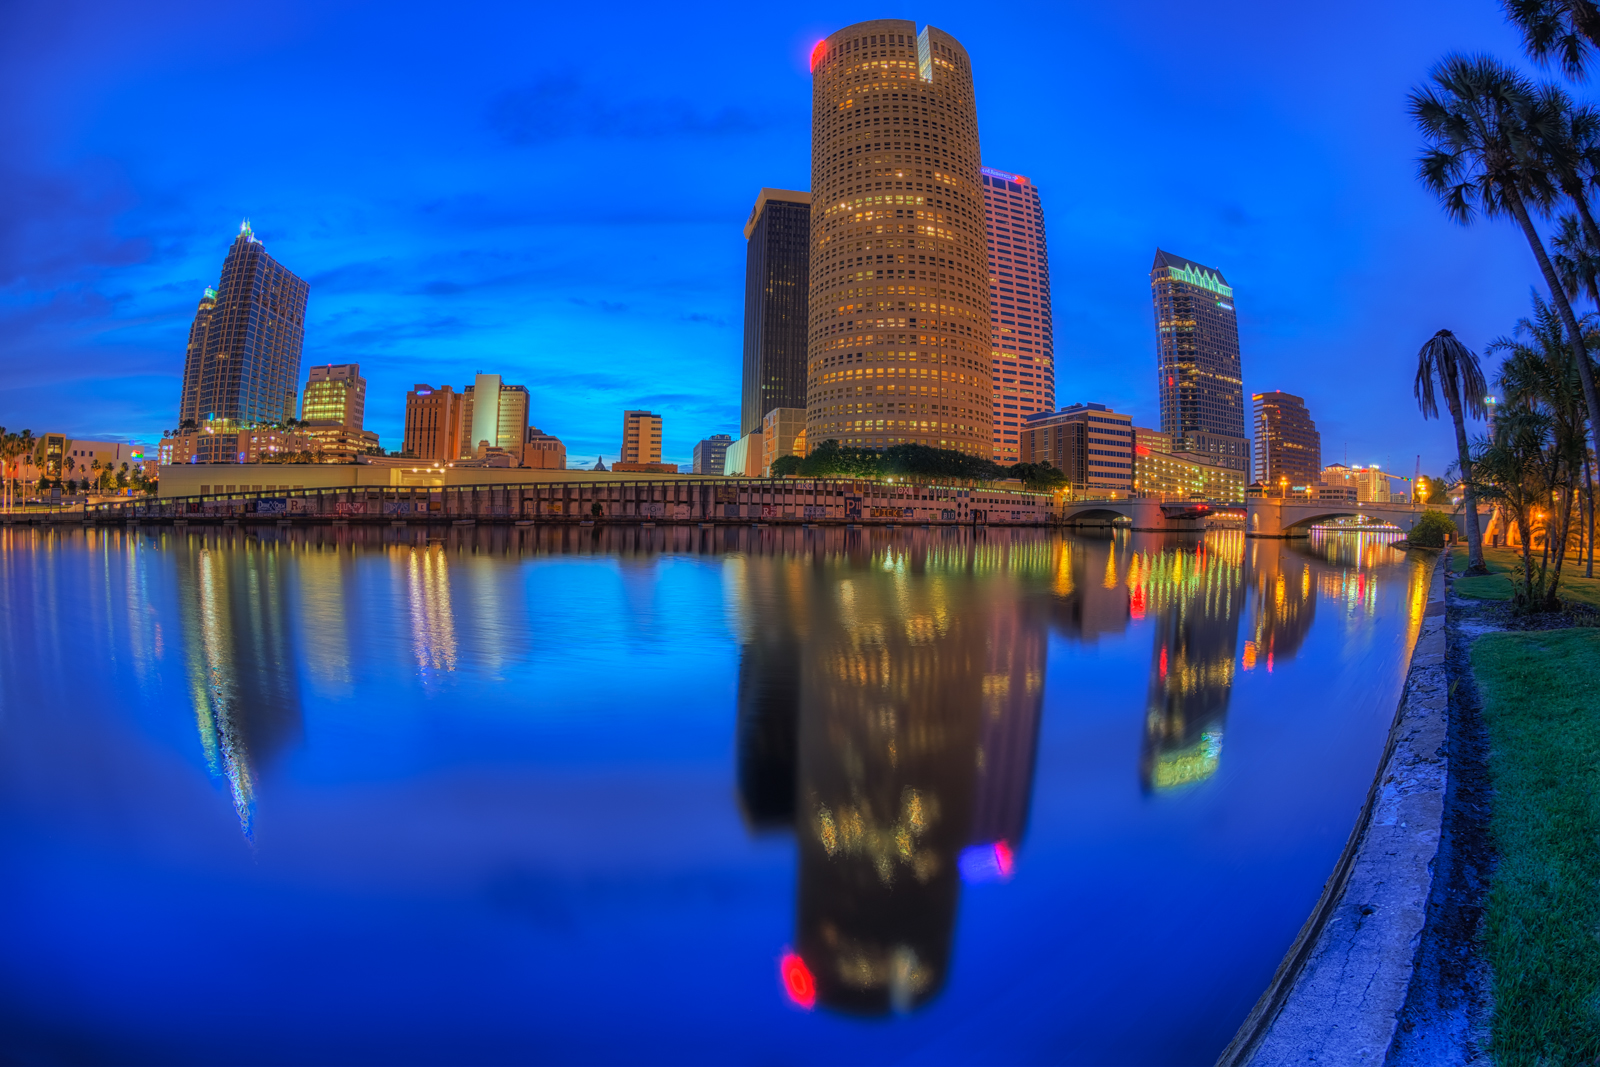 Hillsborough River Reflection of Downtown Tampa